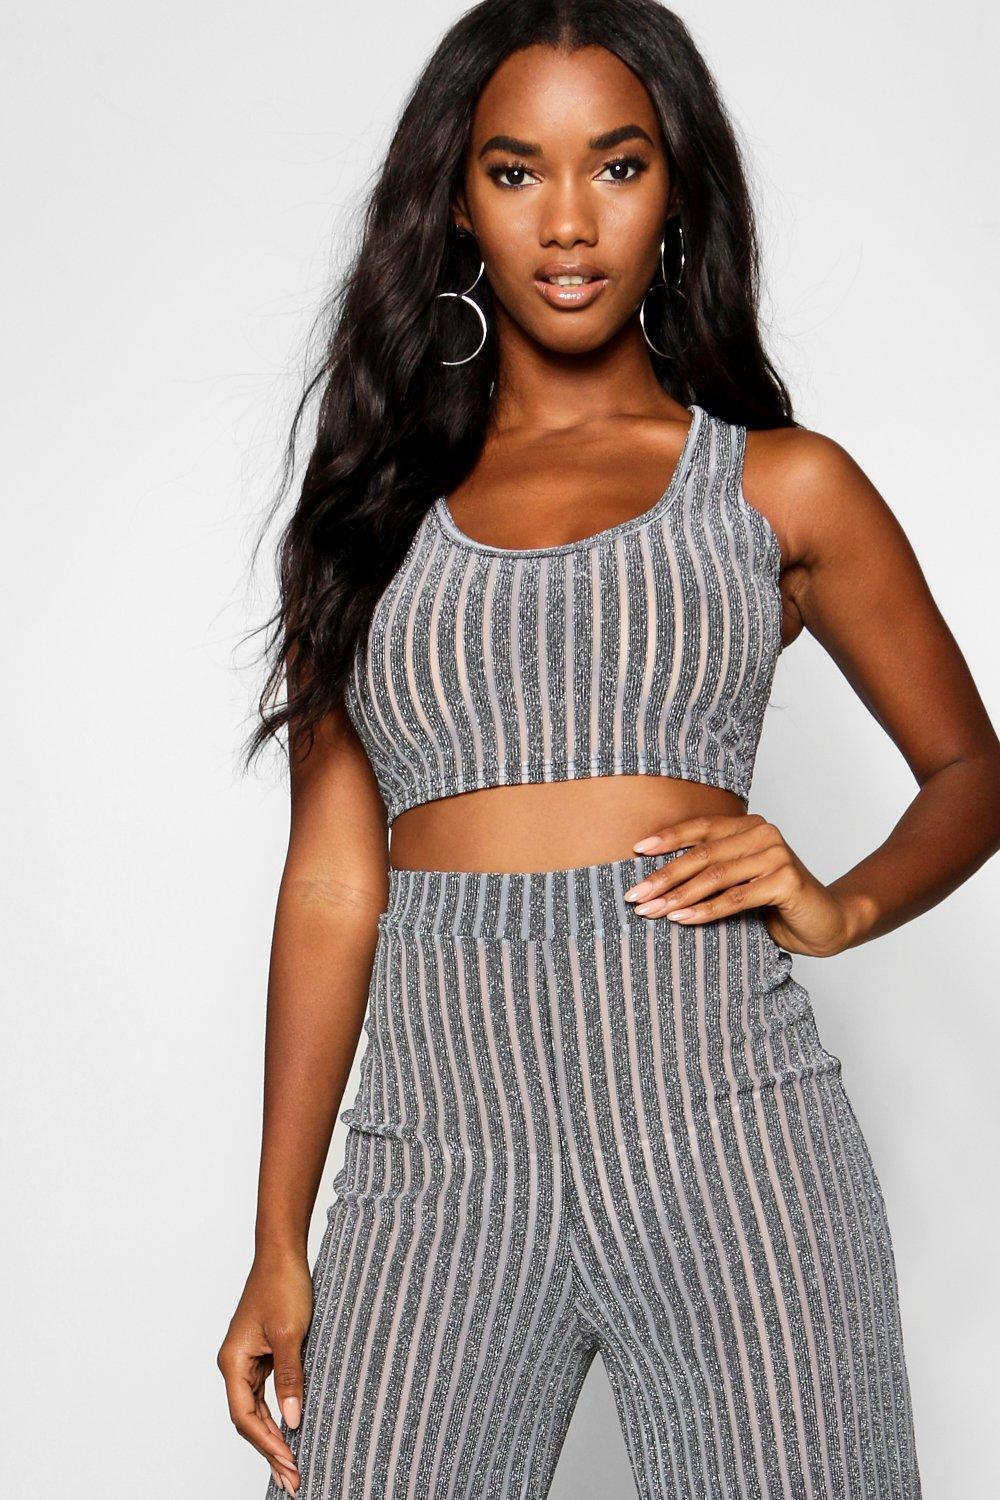 cfbd8d8a67 Boohoo Sheer Metallic Rib Bralet + Wide Leg Trouser Co-ord in Gray ...